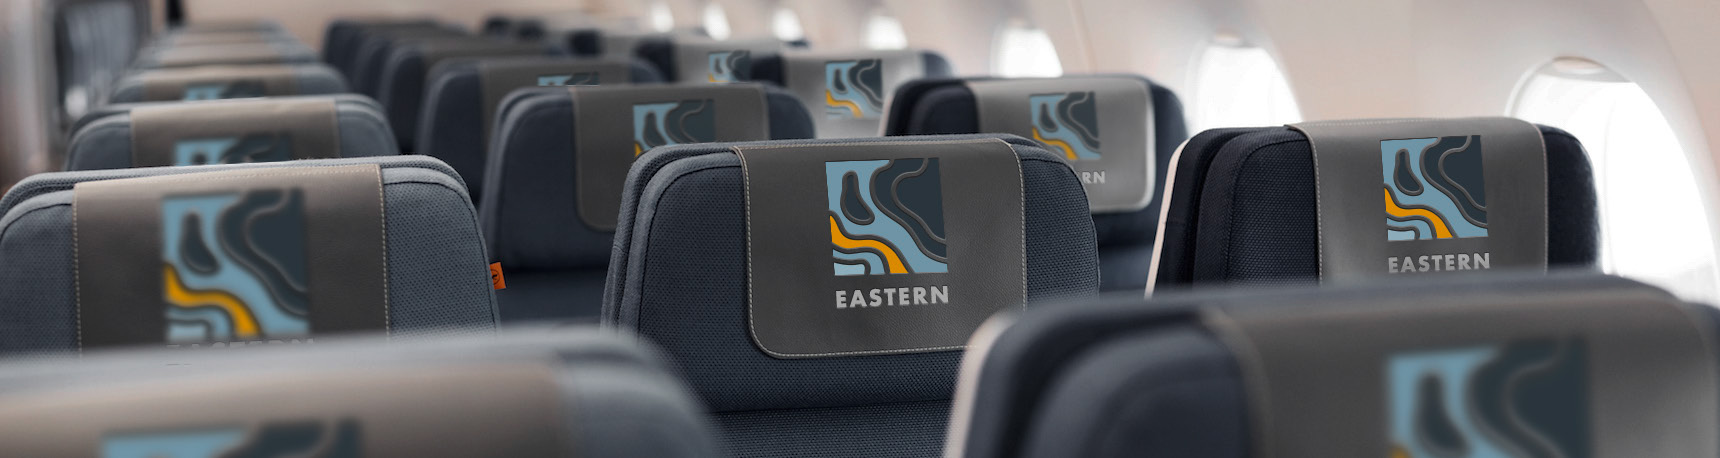 Noted New Logo Identity And Livery For Eastern By Mechanica